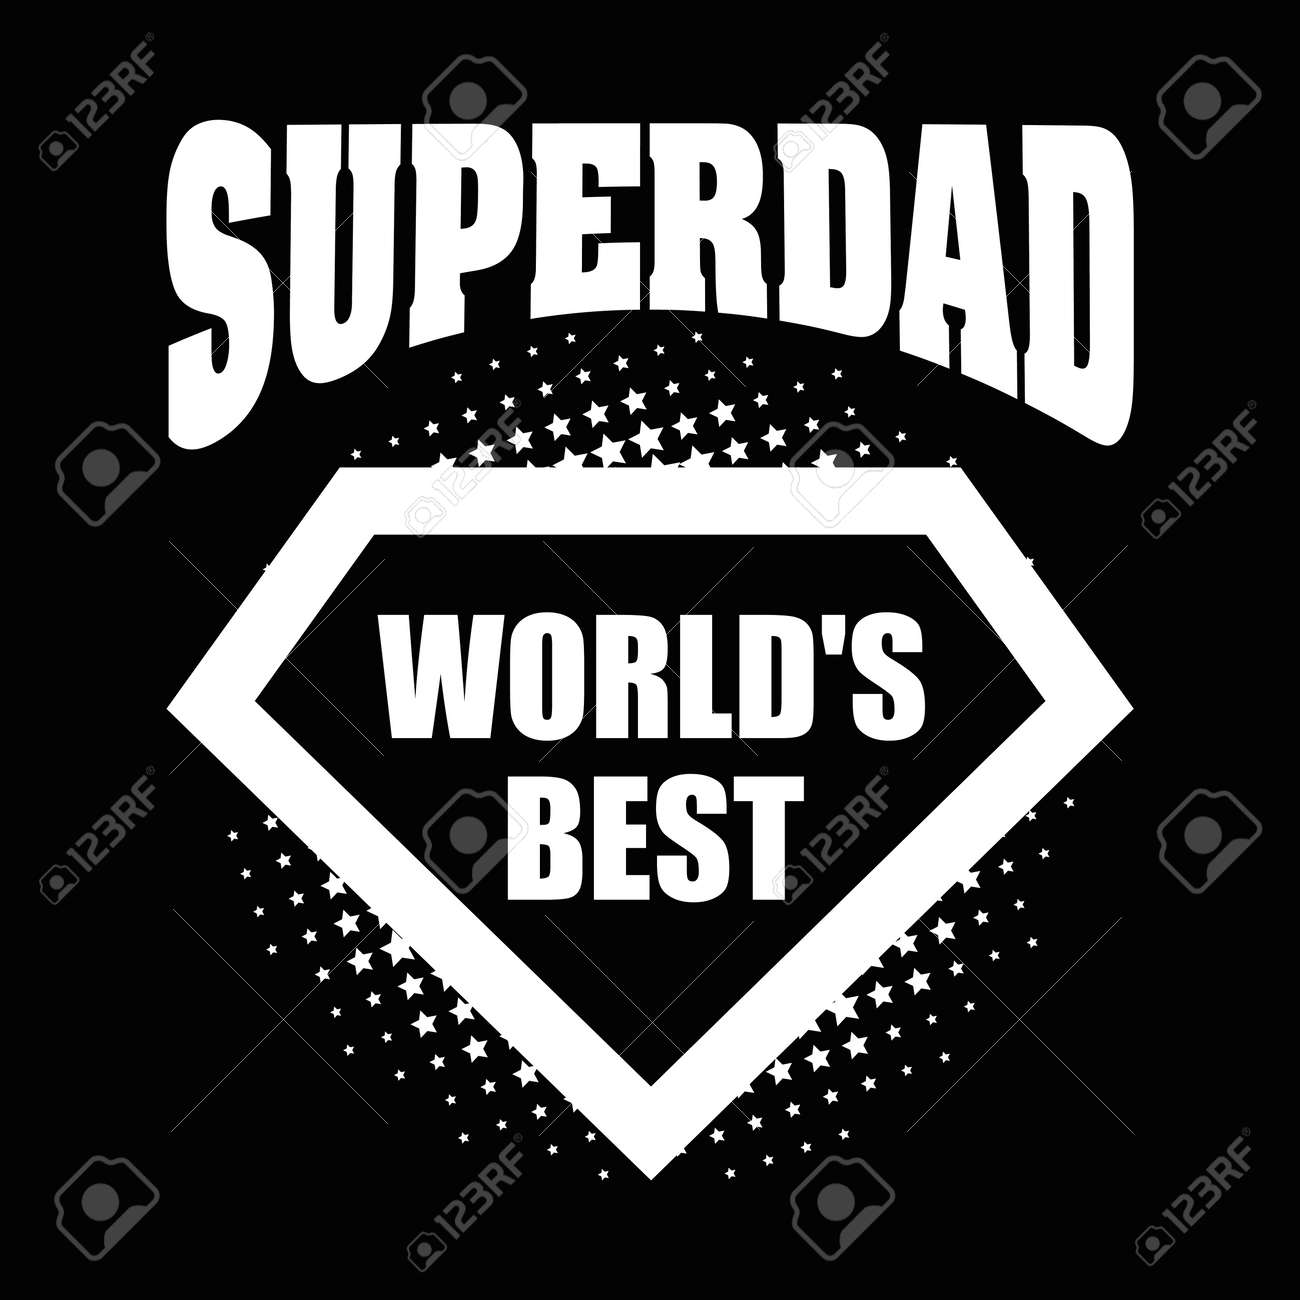 Superdad Logo Superhero Worlds Best Vector Illustration T Shirt Stock